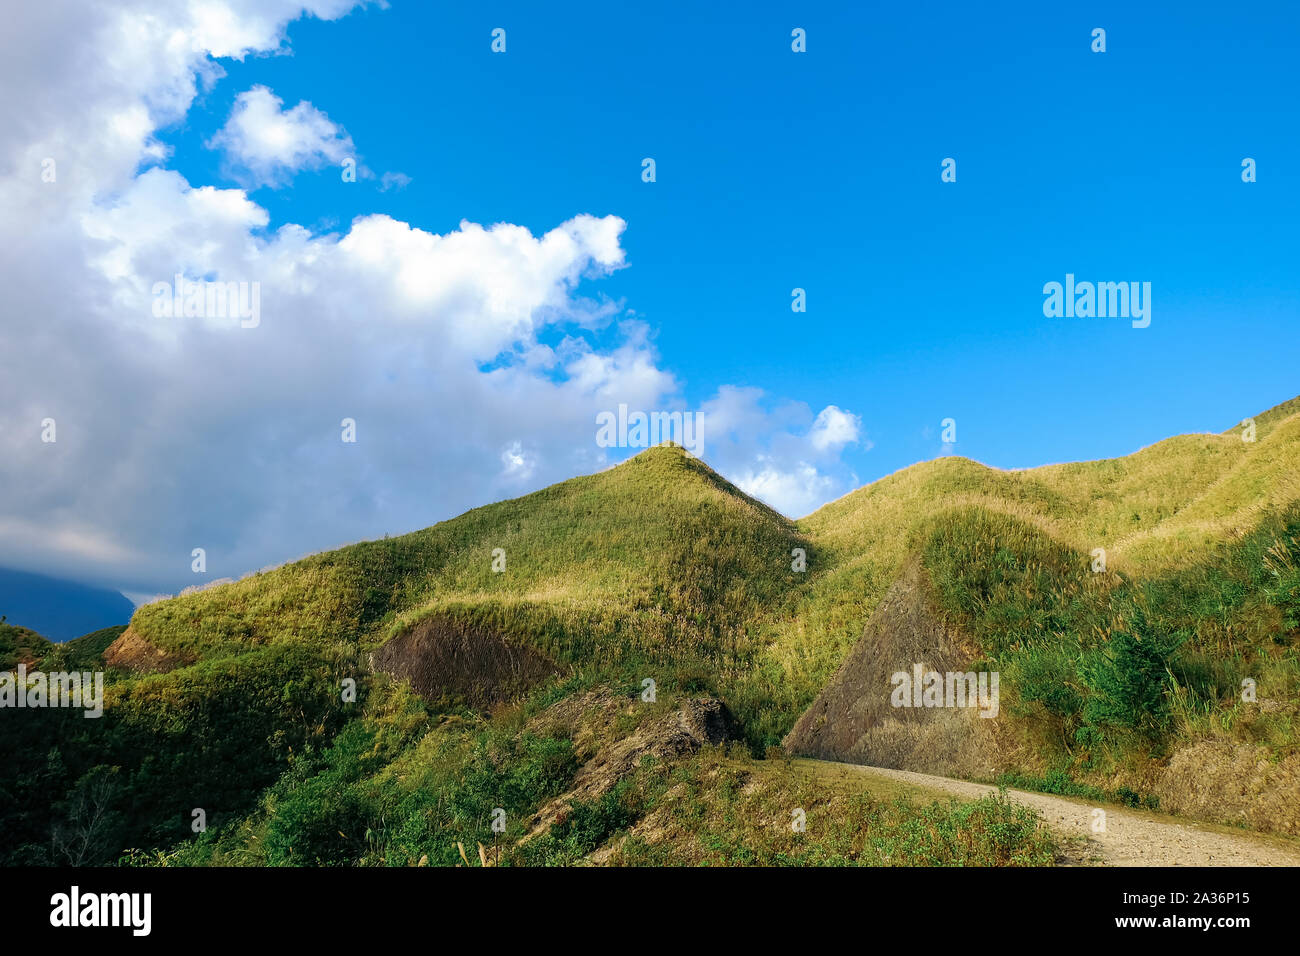 Amazing landscape in Ta Xua, Northwest Vietnam. At an altitude of 2000m above sea level, this place is also known by the name: Clouds Paradise. Stock Photo